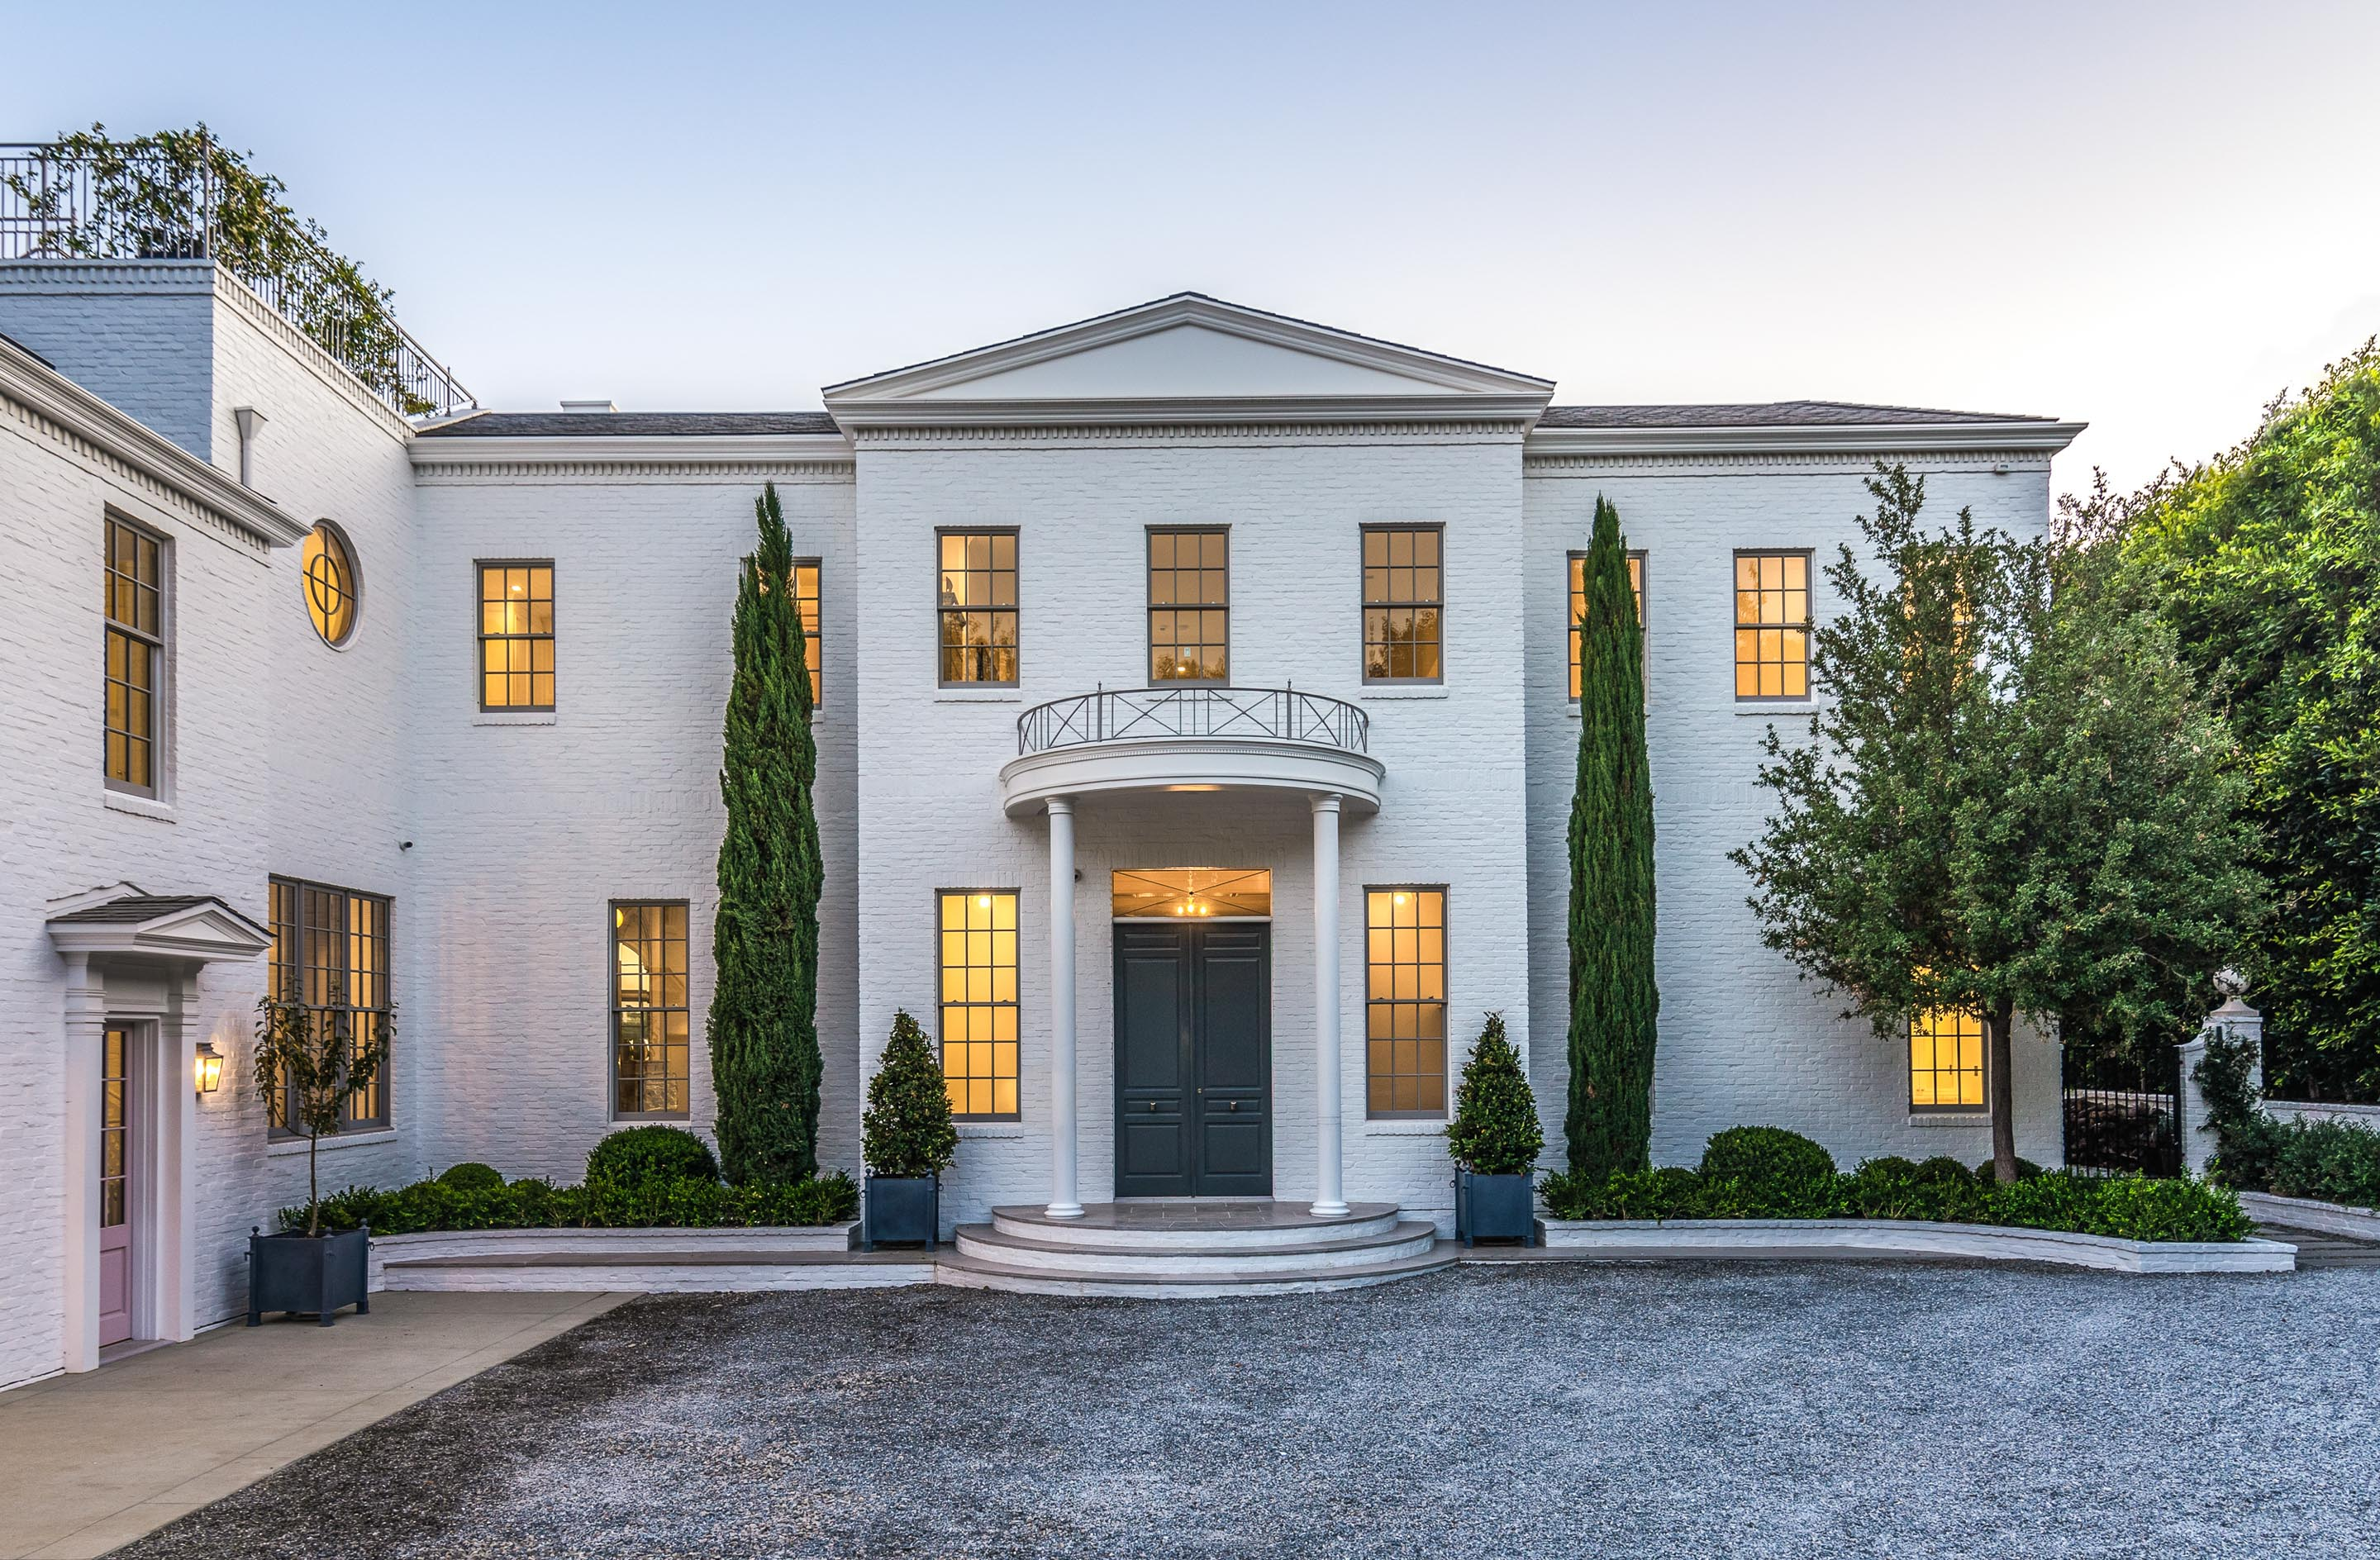 A four-year brentwood project completed this year brings new construction with every detail included−and a Windsor Smith aesthetic−to market.